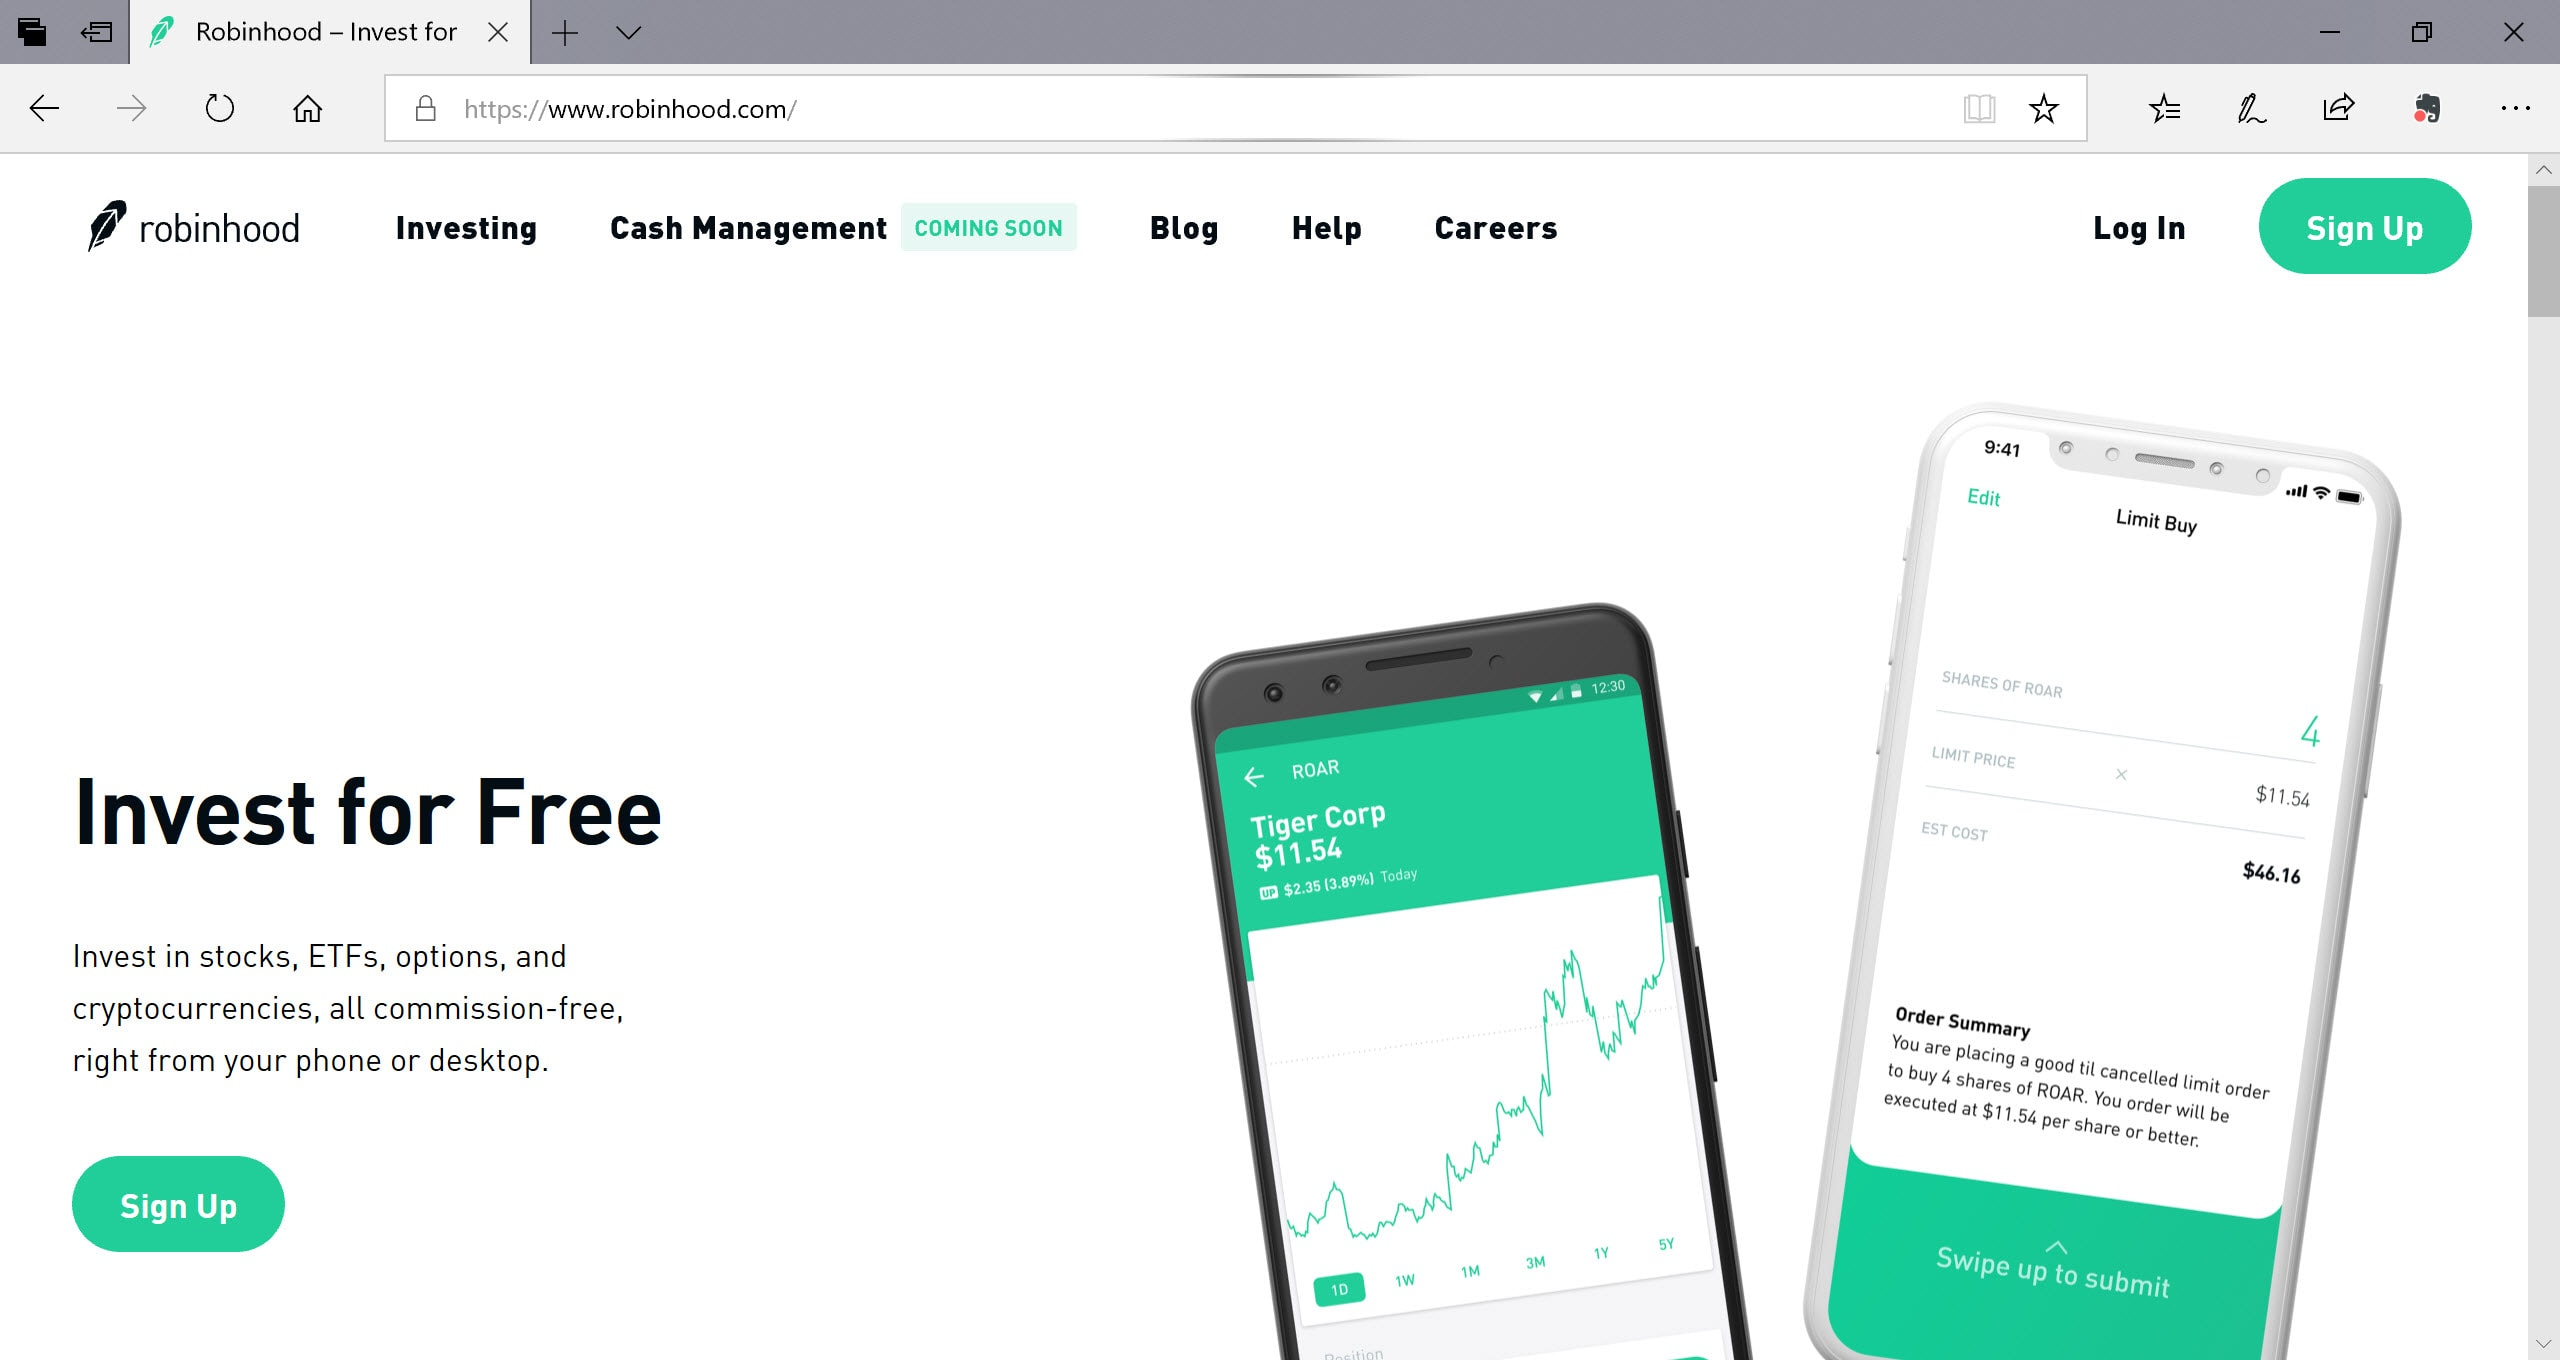 Robinhood Commission-Free Investing Dimensions In Centimeters